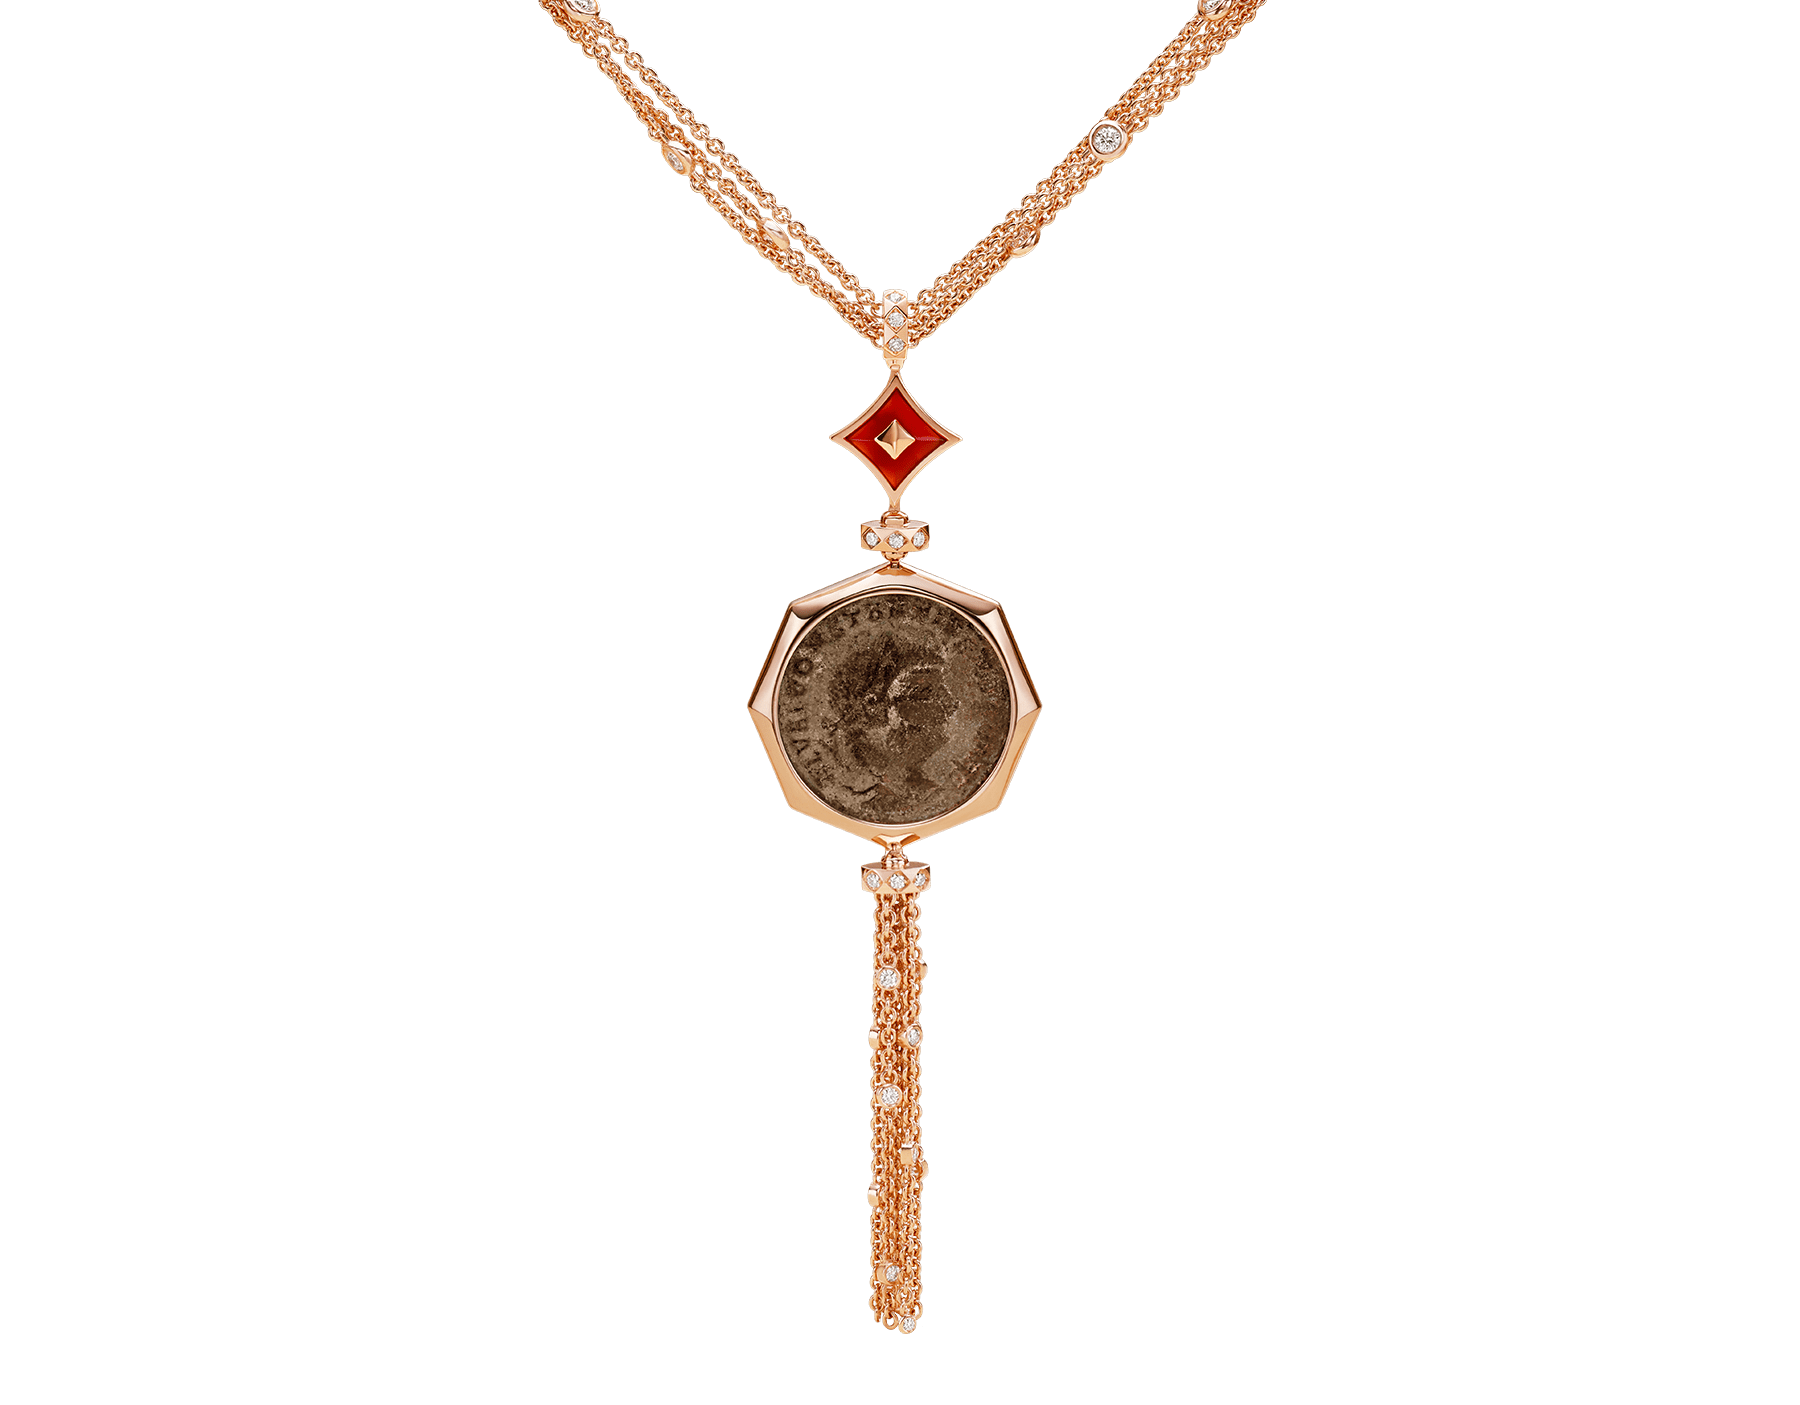 Monete 18 kt rose gold necklace set with an ancient coin, carnelian elements and pavé diamonds 355979 image 1